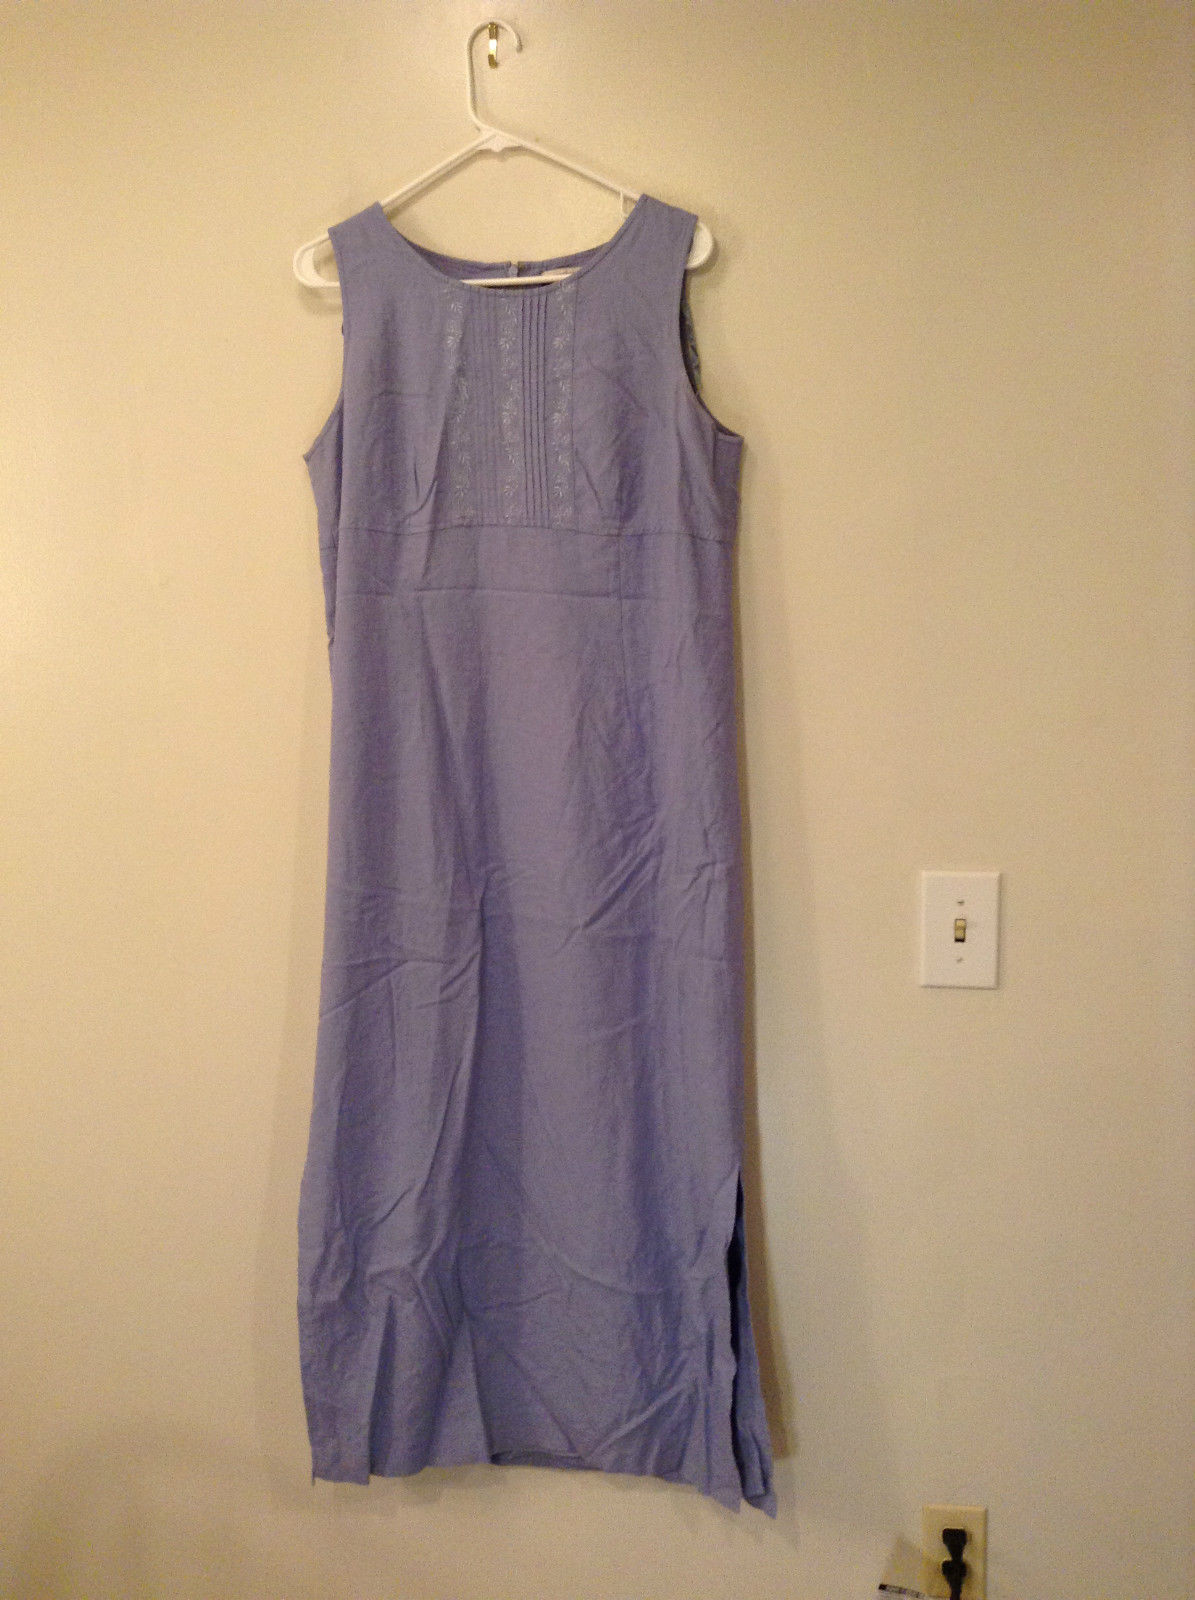 Long Blue Sleeveless Dress Amanda Smith Size 14 Fully Lined Embroidery on Front